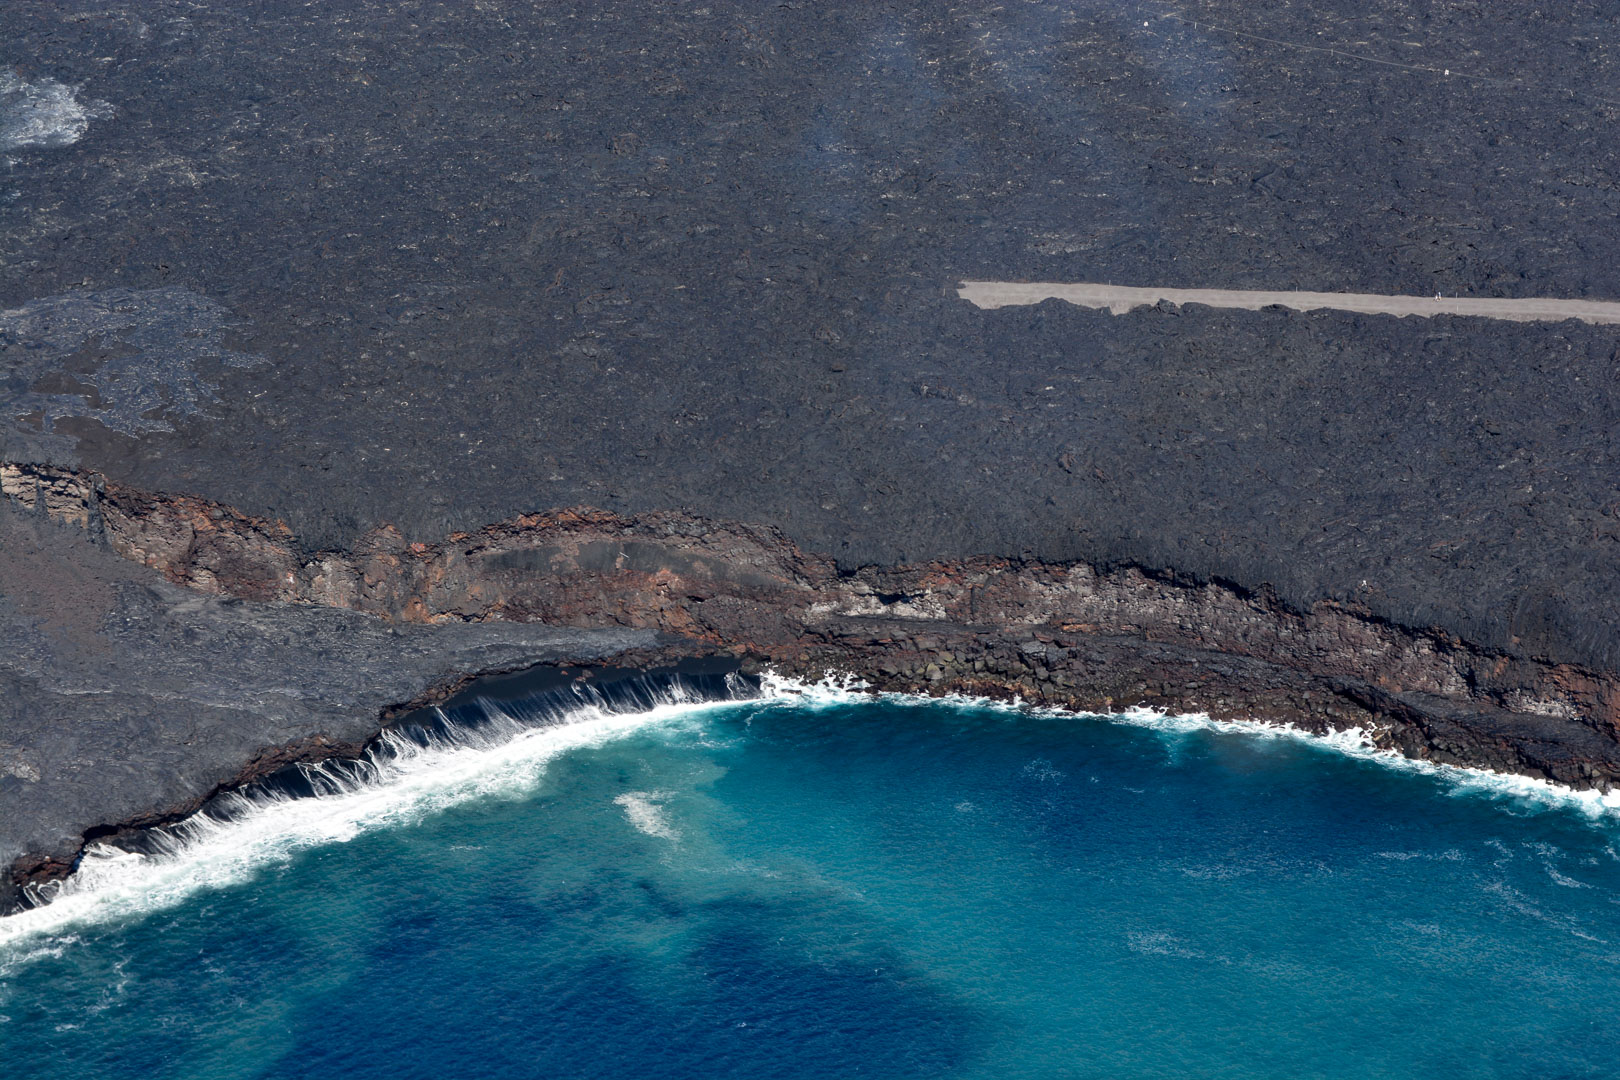 A close-up of the lava entering the ocean as well as a road that was blocked off by active lava flow